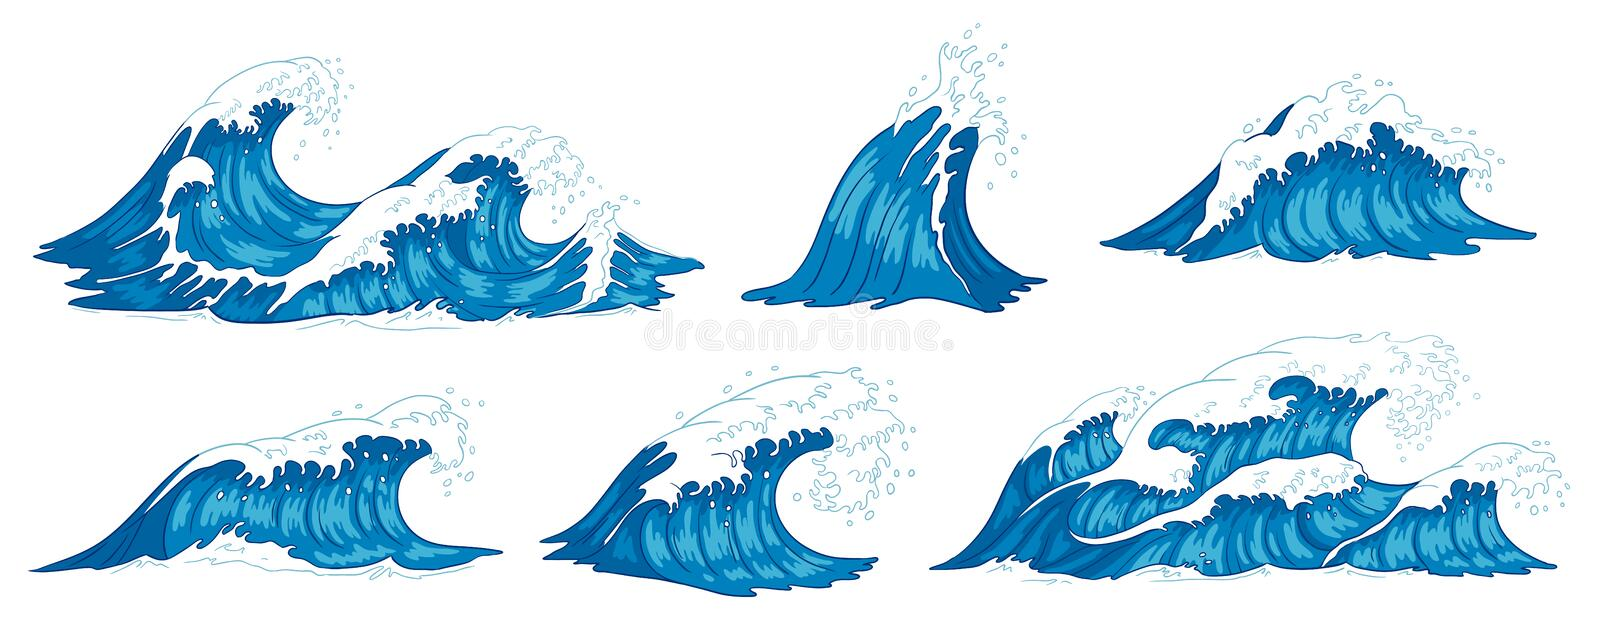 Ocean waves. Raging sea water wave, vintage storm waves and ripples tides hand drawn vector illustration royalty free illustration